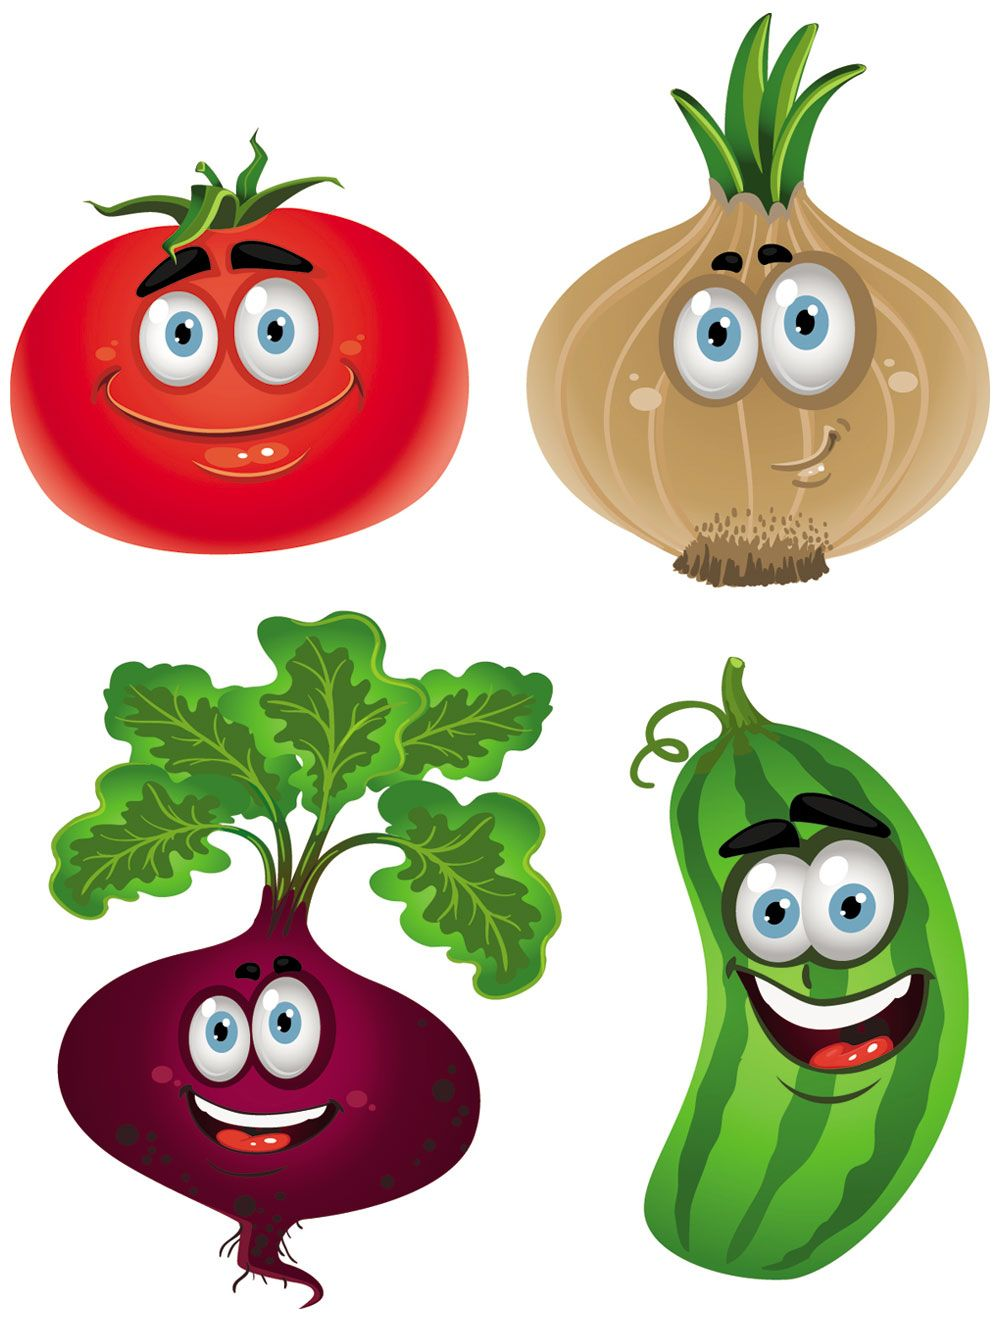 Veggies clipart sad. Drawings of vegetables fruit